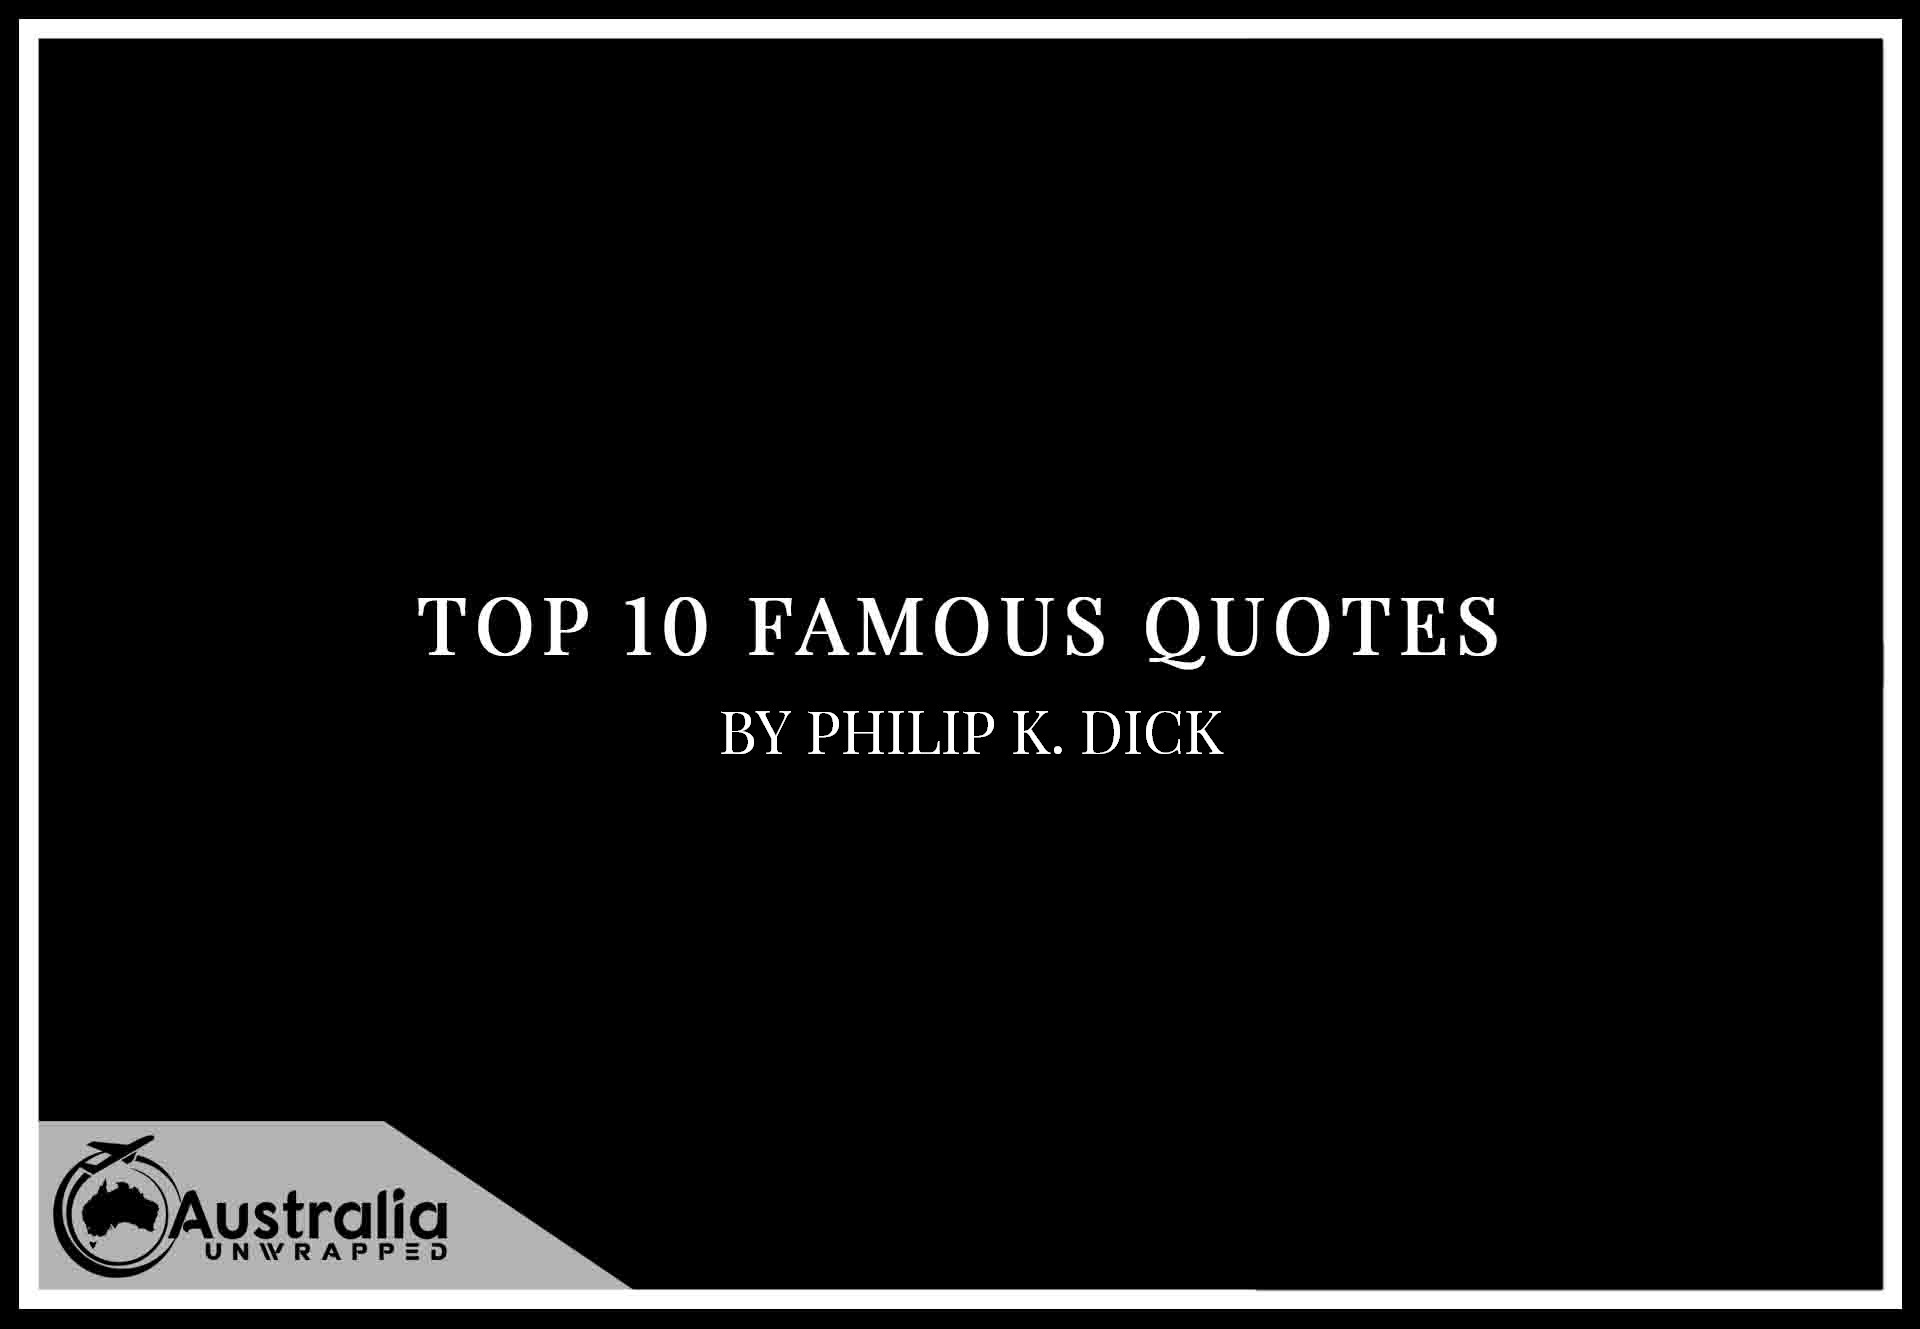 Top 10 Famous Quotes by Author Philip K. Dick